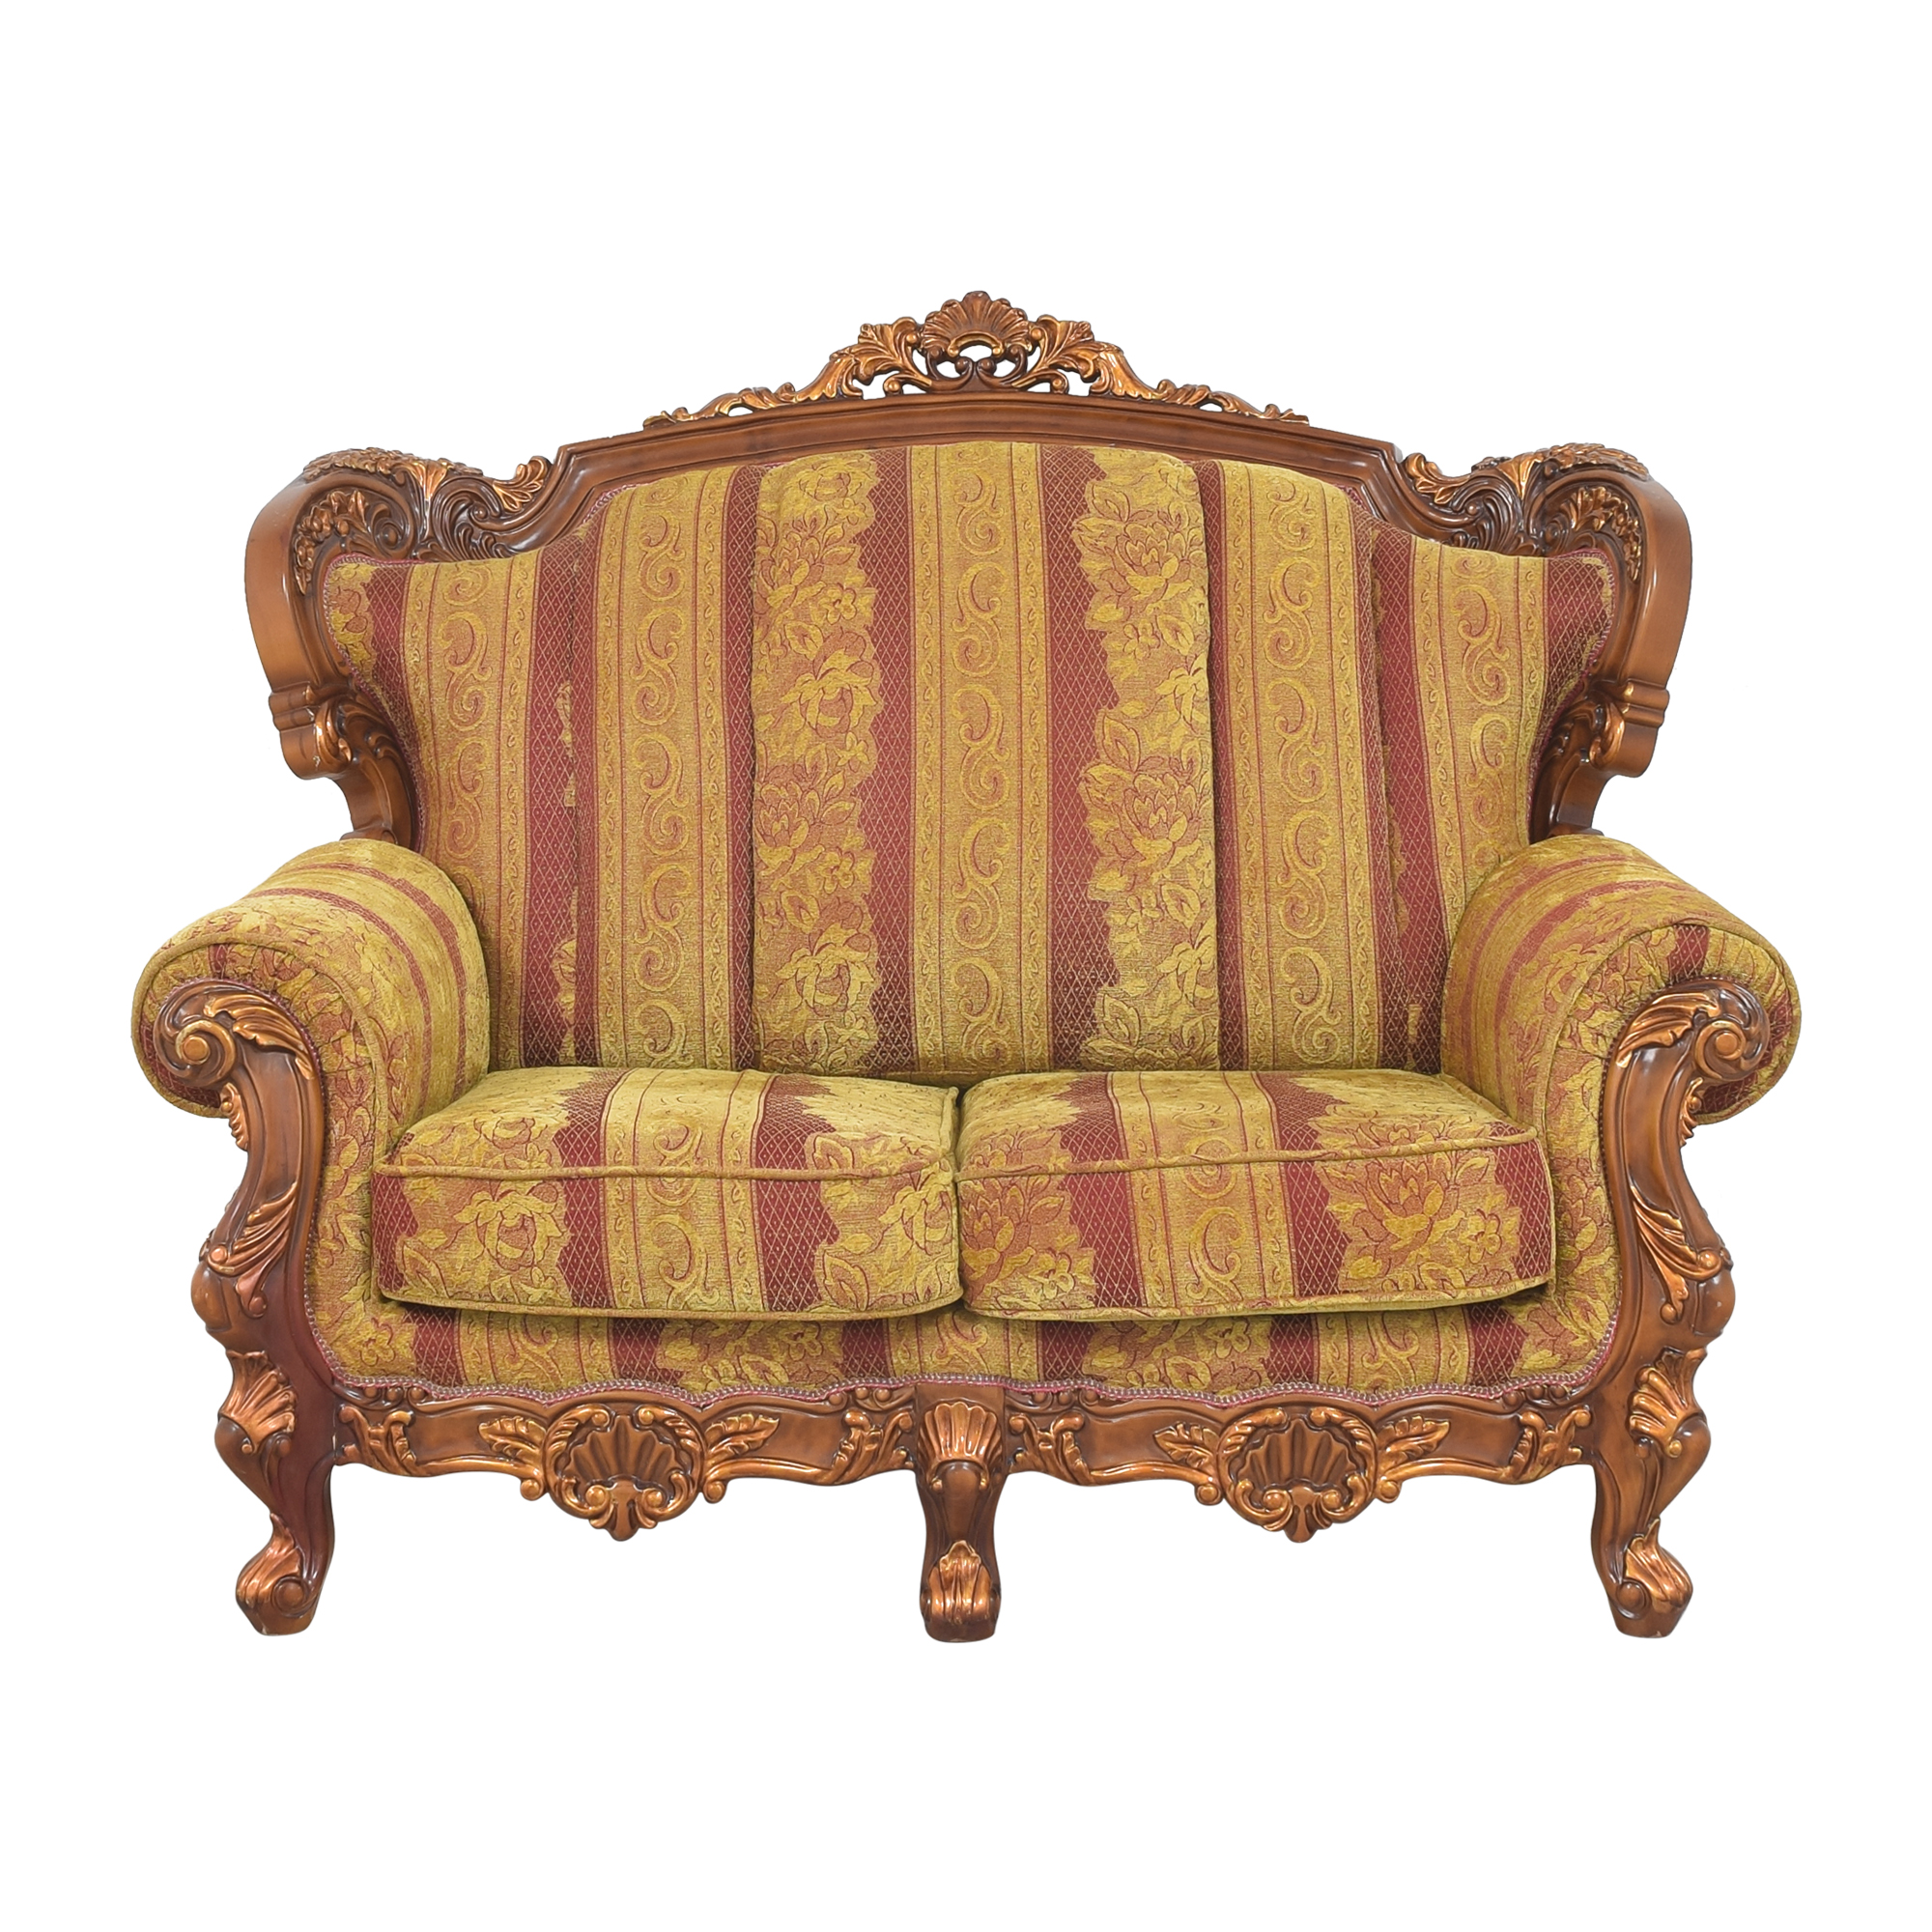 Ornate French-Style Loveseat on sale